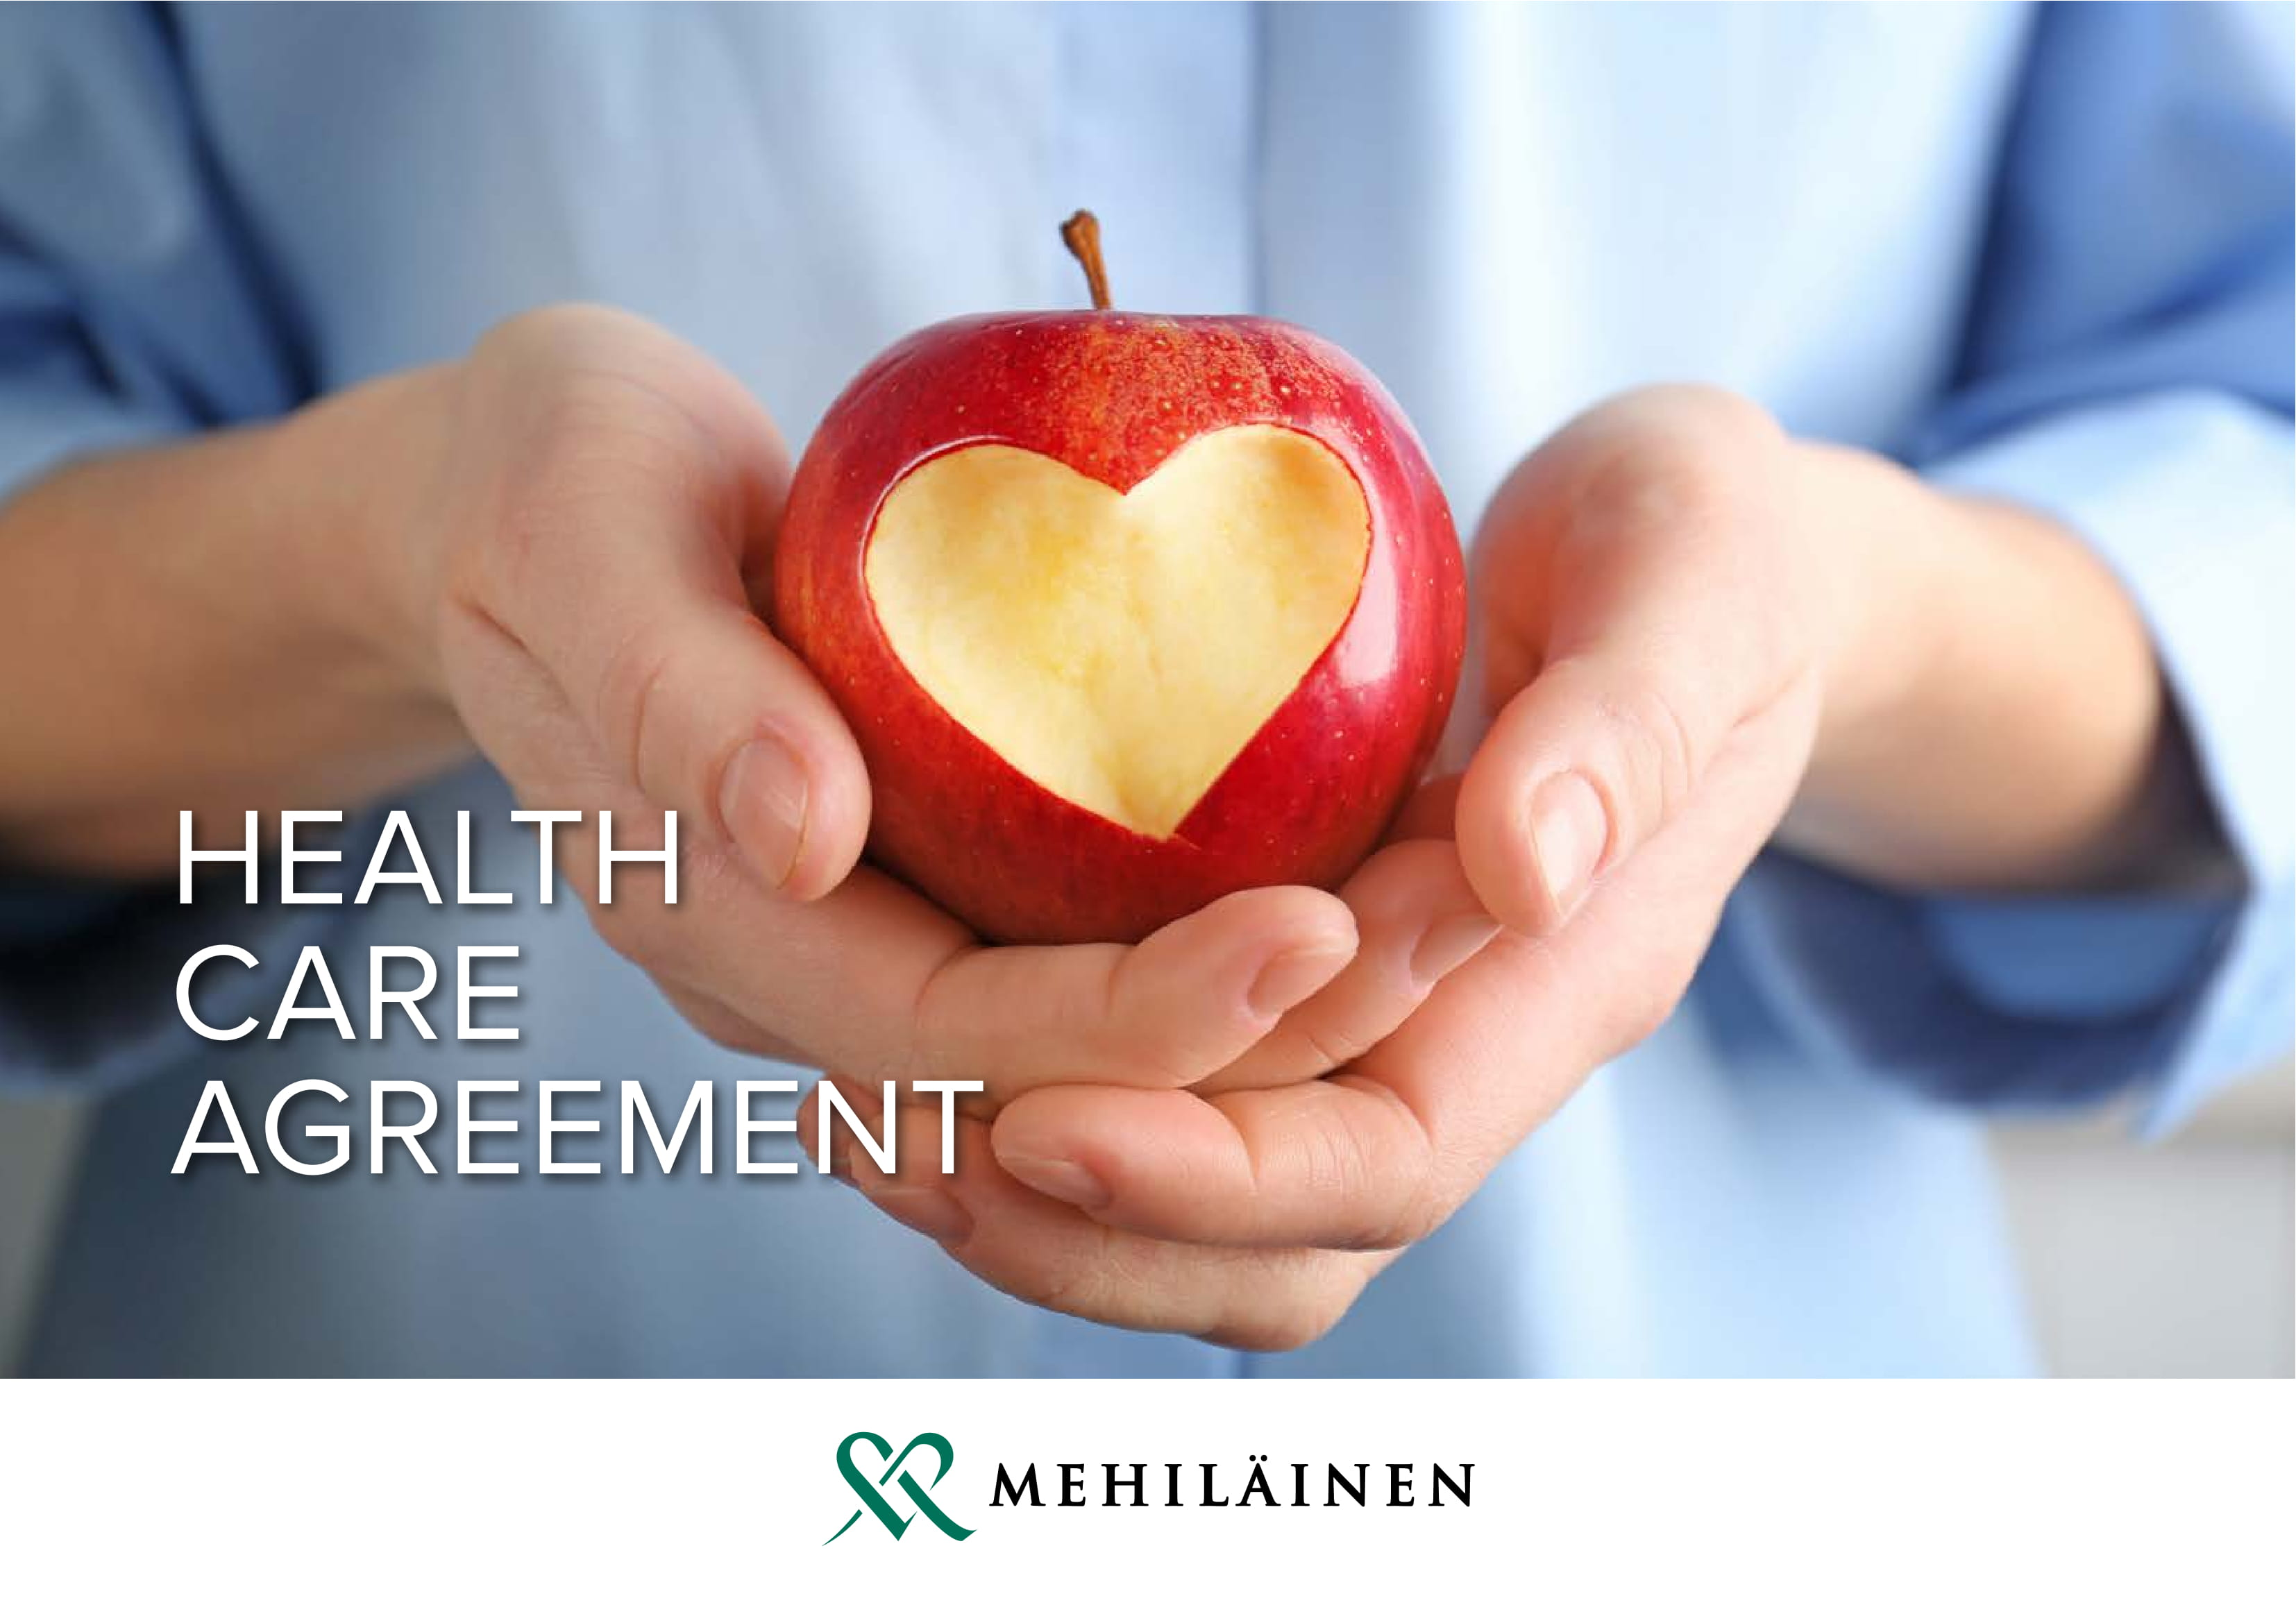 Health Care Agreement. Medical care services at a fixed monthly fee of 49 euro/month